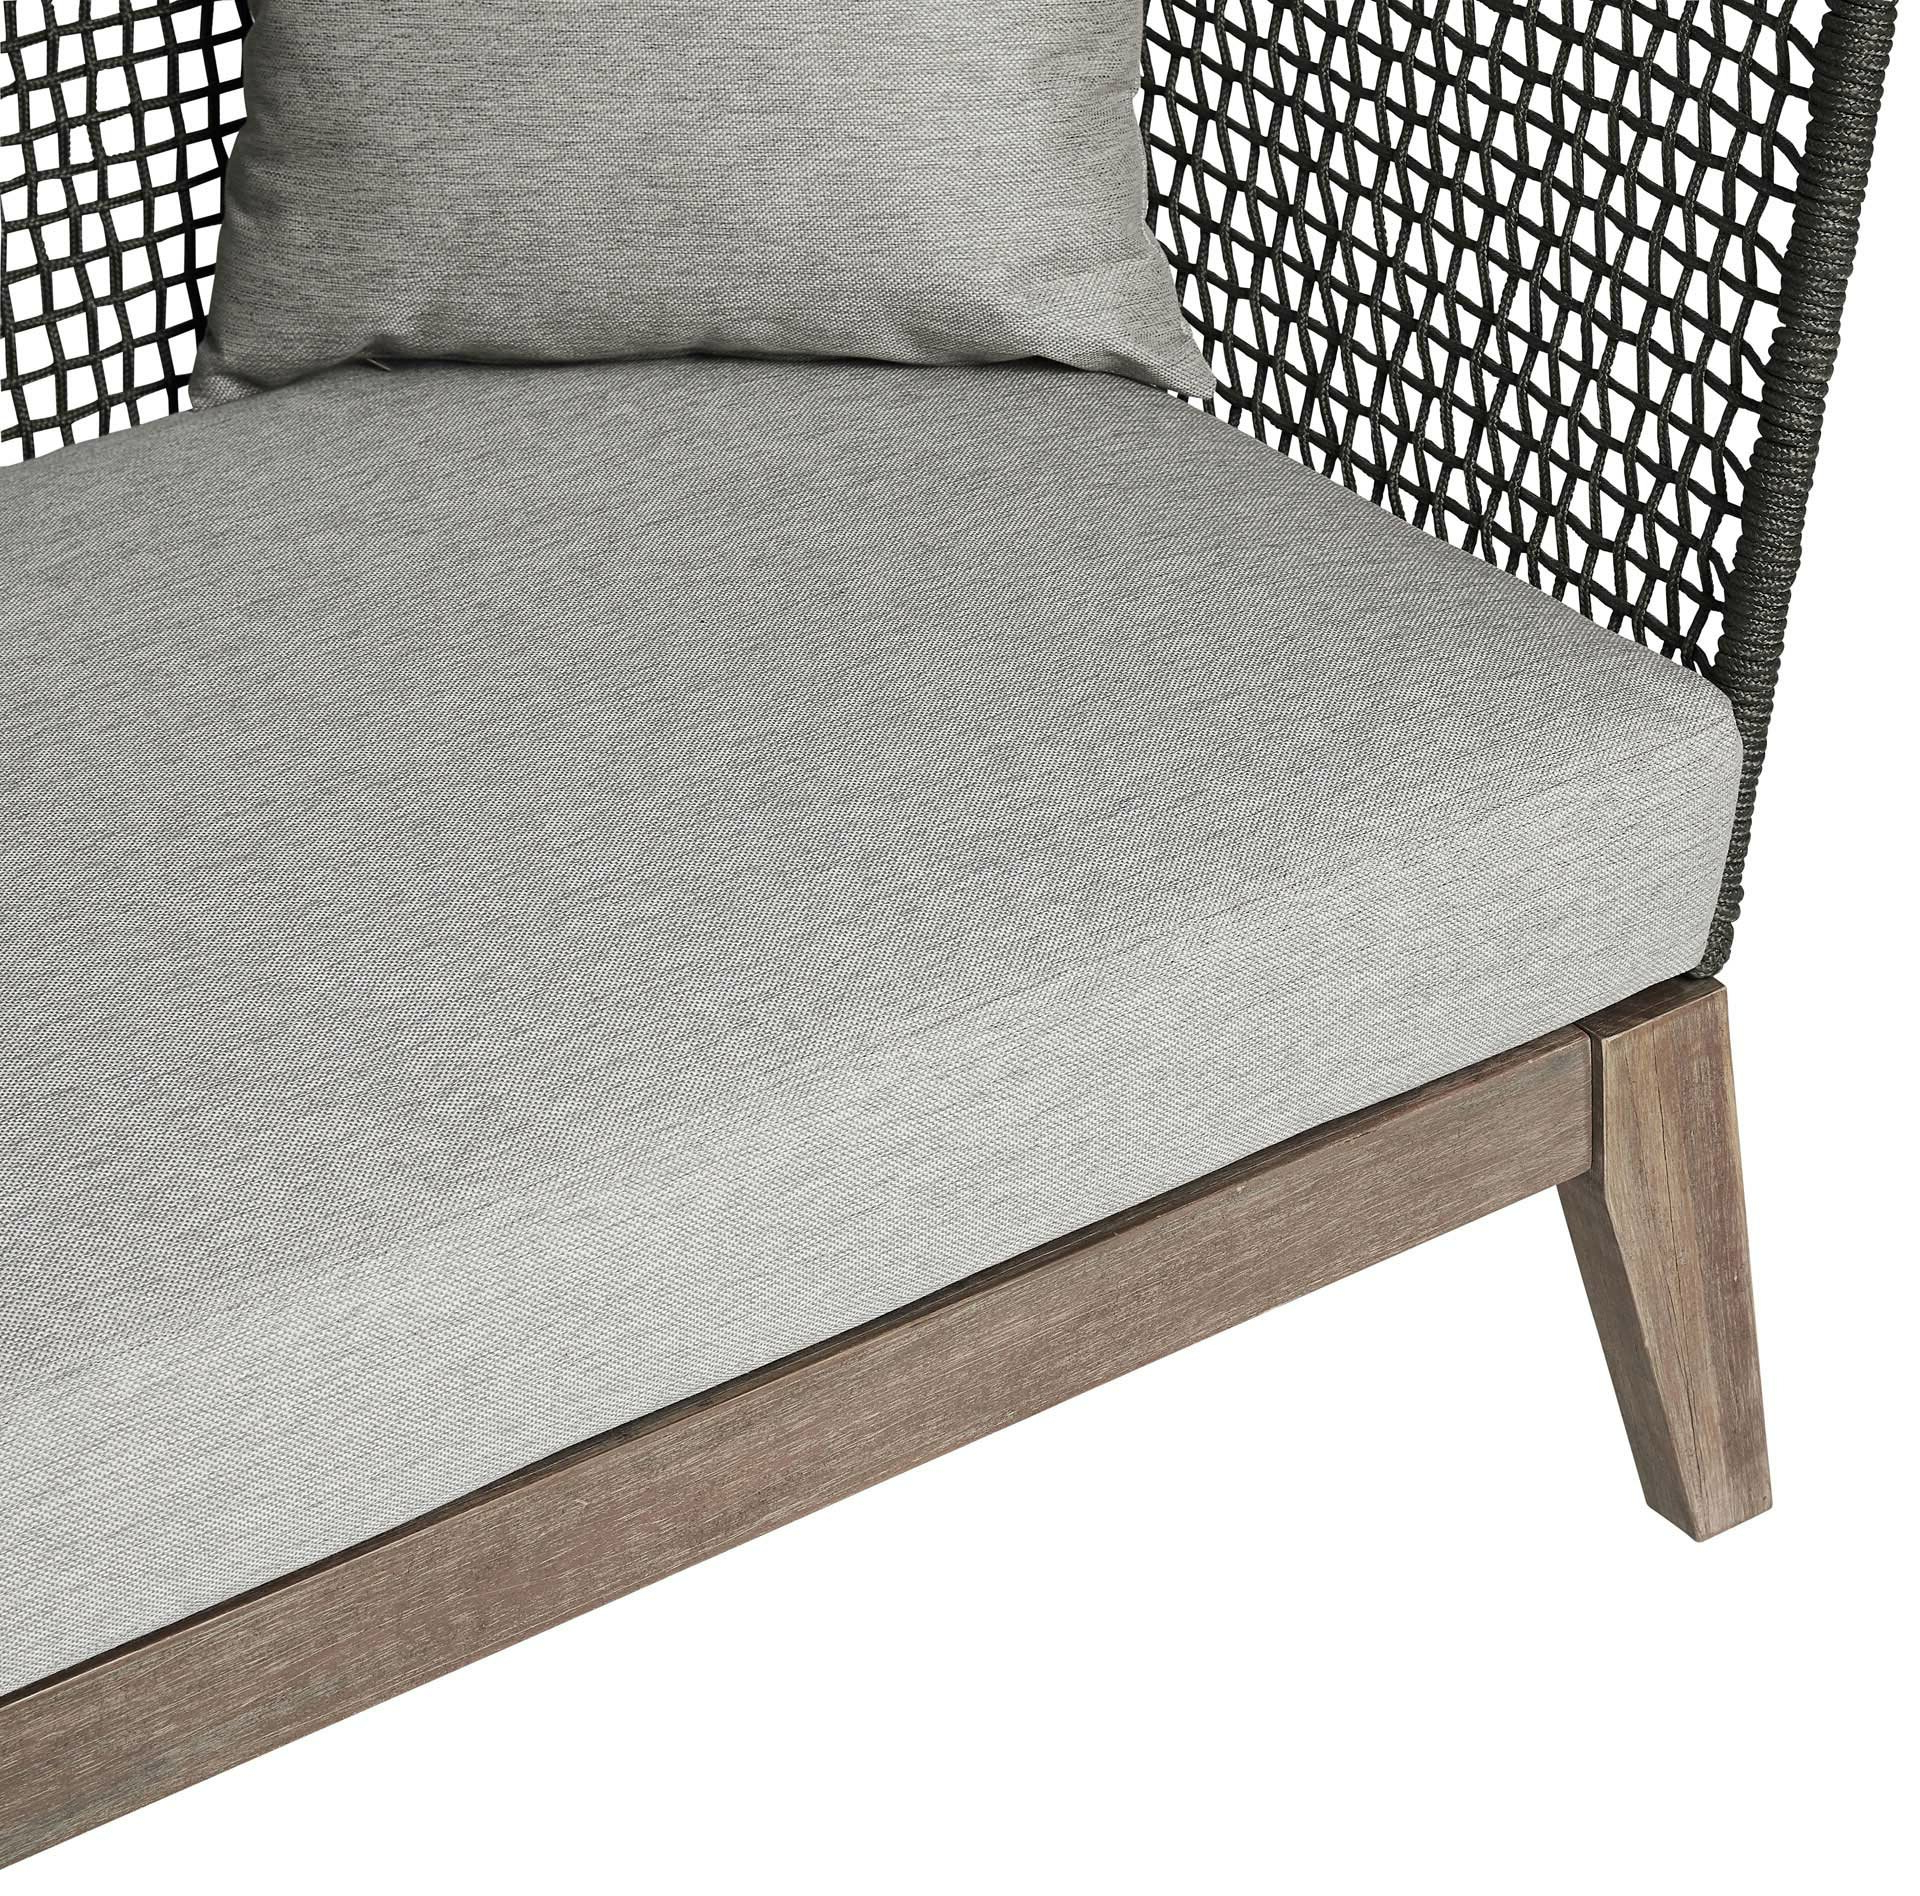 Netta Patio Sofa With Cushion Intended For Famous Rossville Outdoor Patio Sofas With Cushions (View 20 of 25)